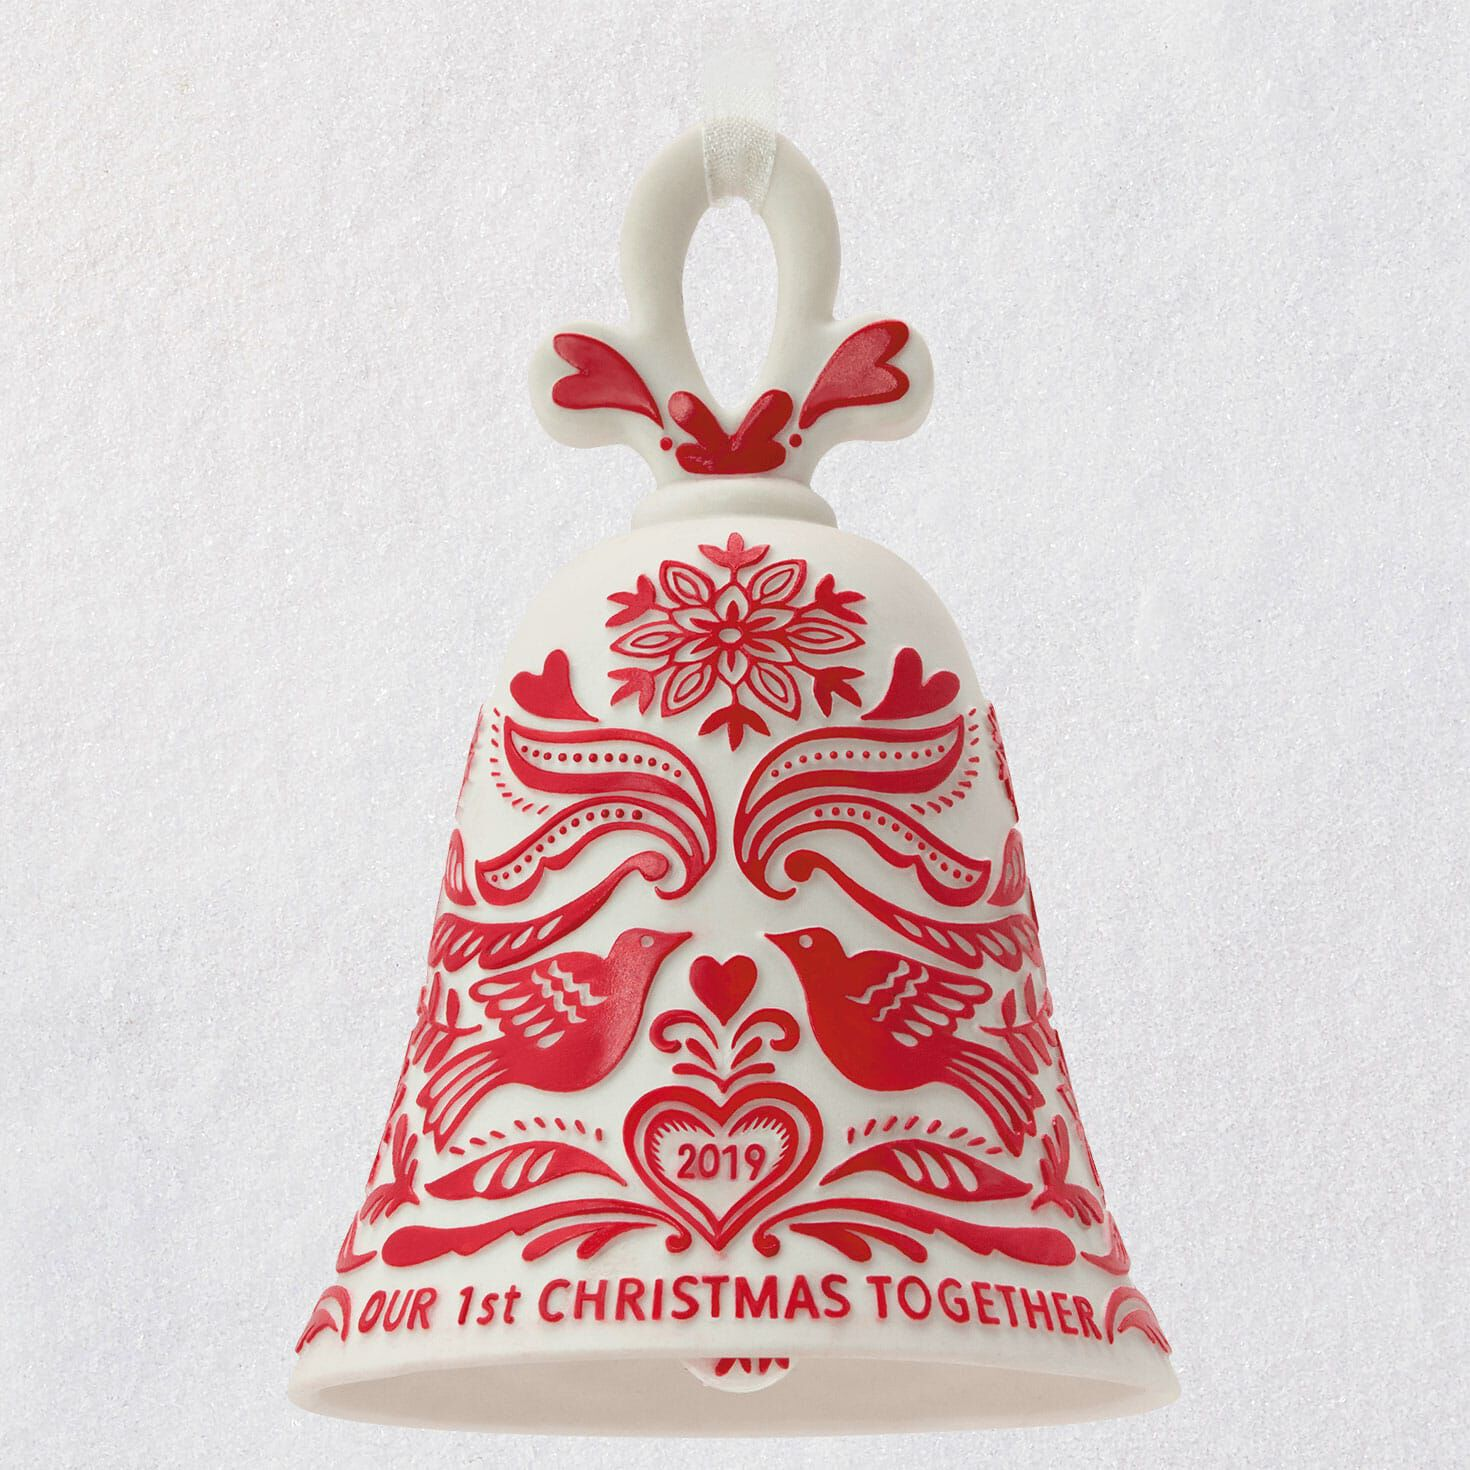 Christmas Bell.Our First Christmas Bell 2019 Porcelain Ornament